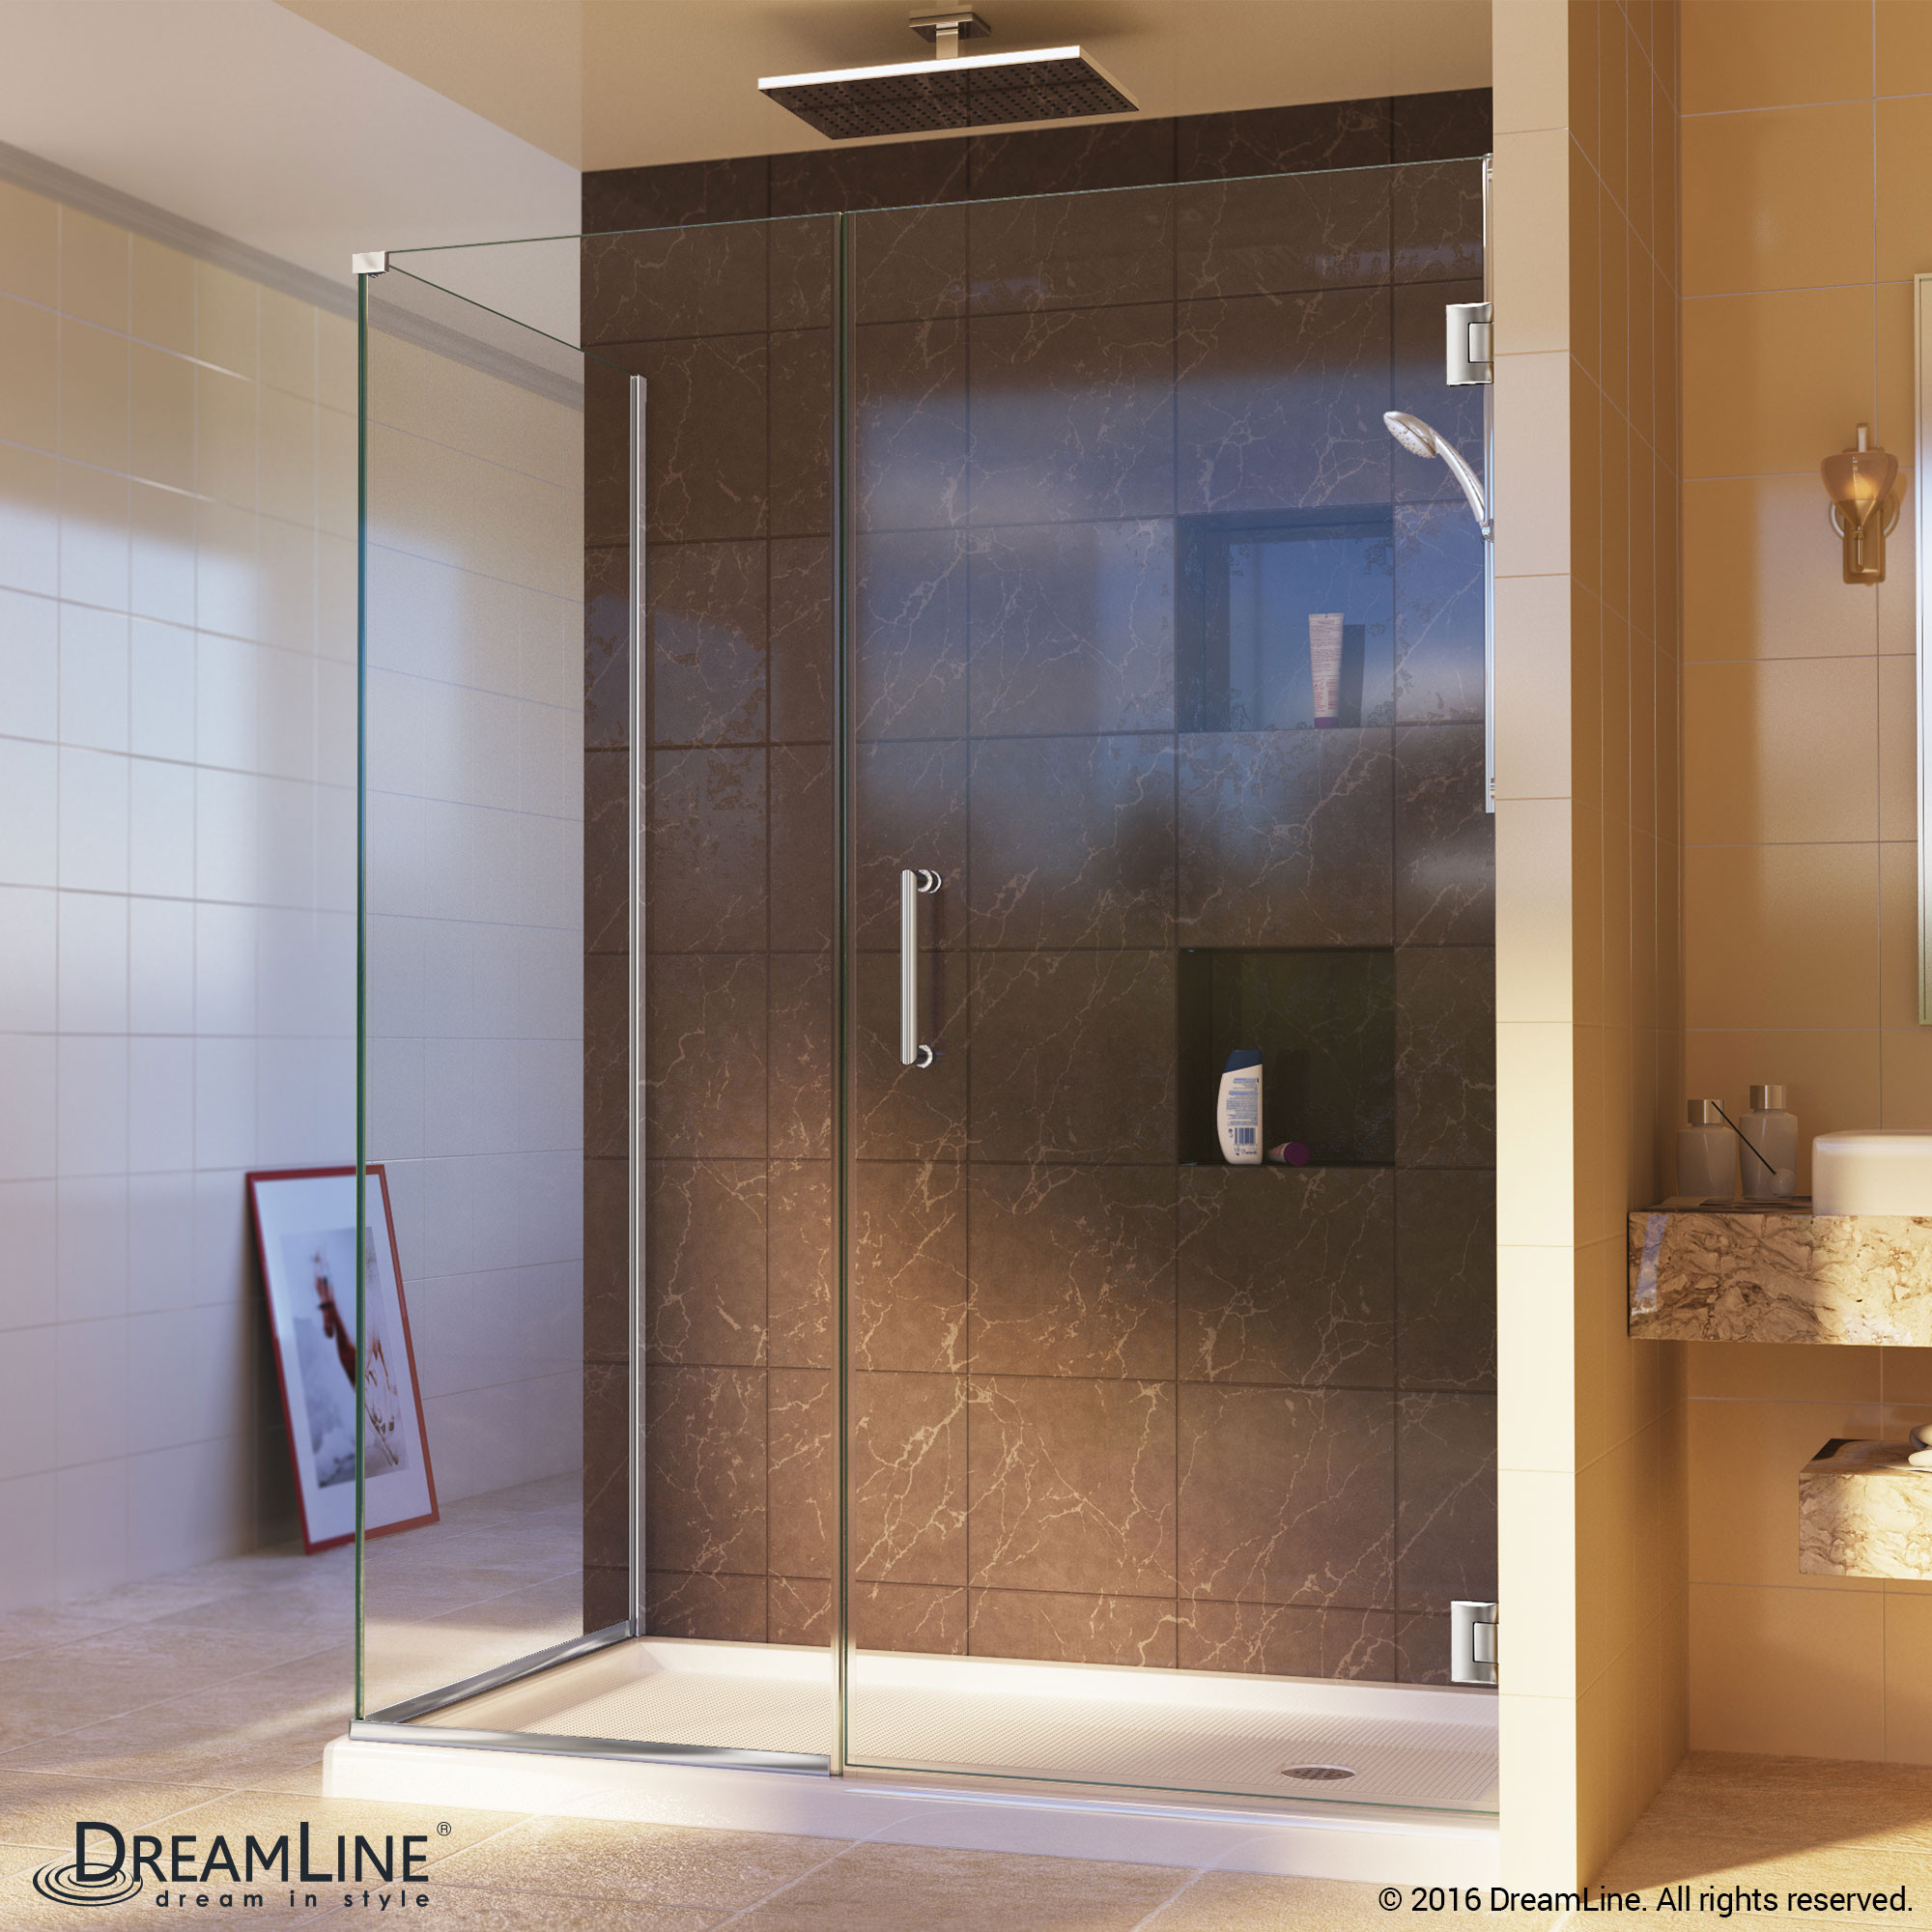 DreamLine SHEN-24465300-01 Unidoor Plus Hinged Shower Enclosure In Chrome Finish Hardware